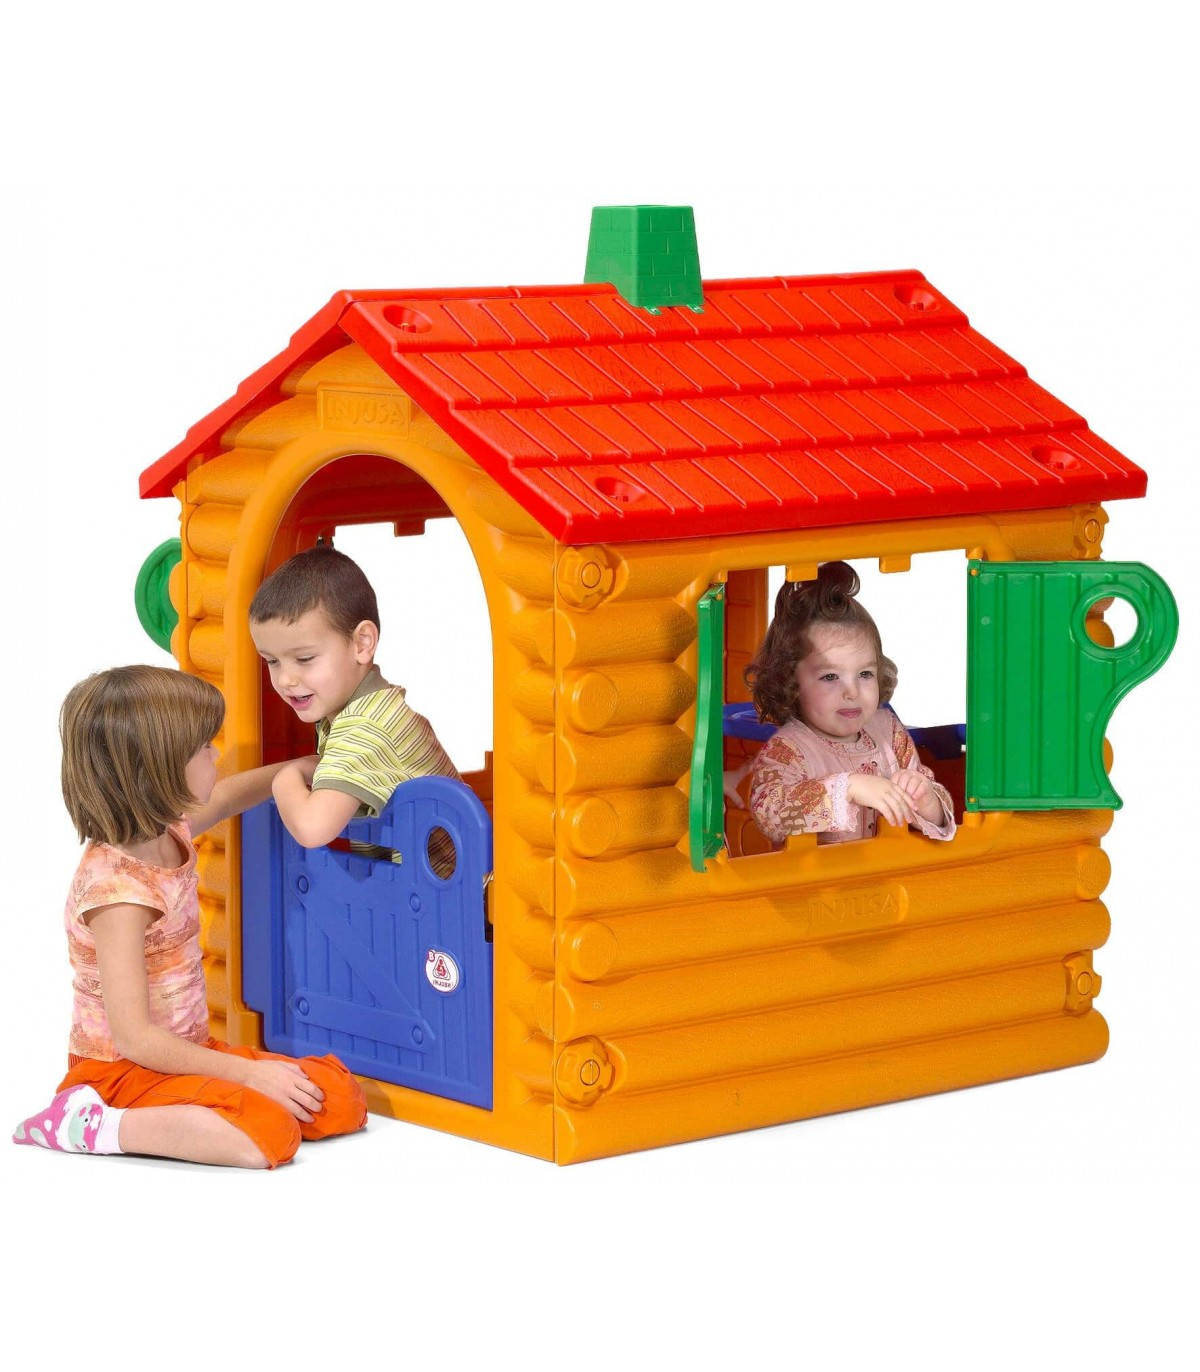 Injusa 'The HUT' Toy house